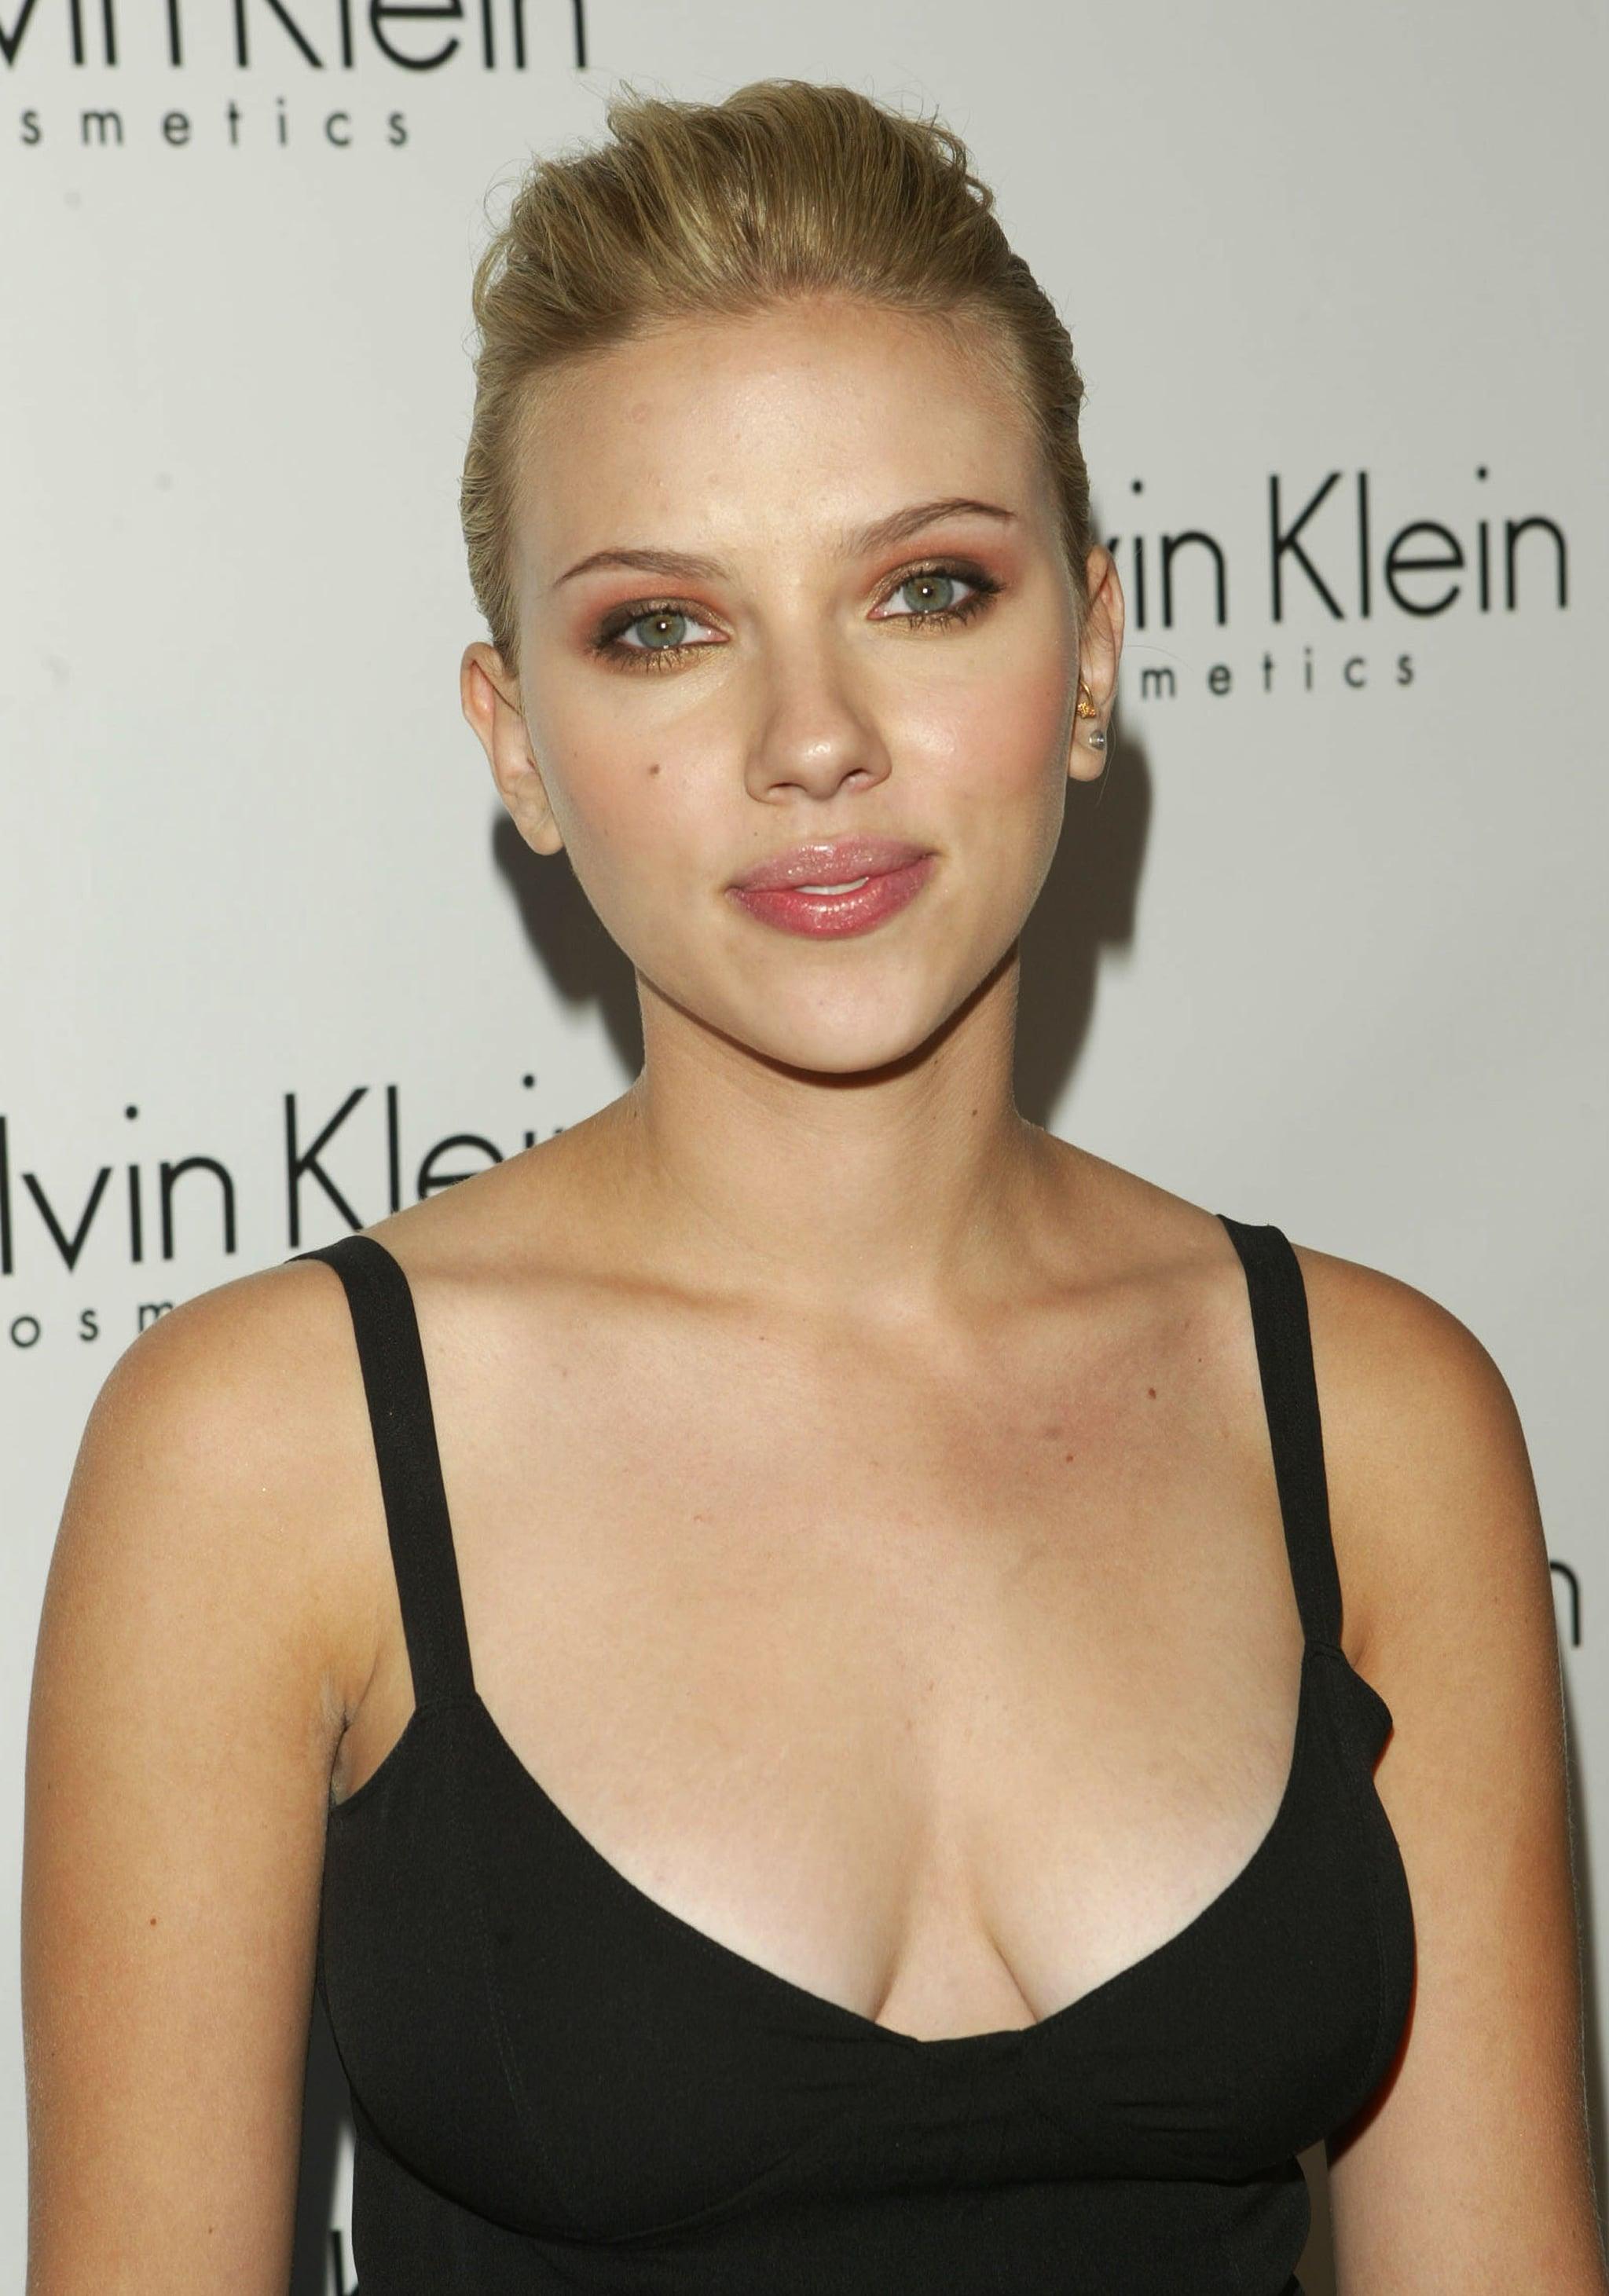 Celebrity Entertainment These Sexy Scarlett Johansson Pictures Will Stop You In Your Tracks Popsugar Celebrity Photo 2